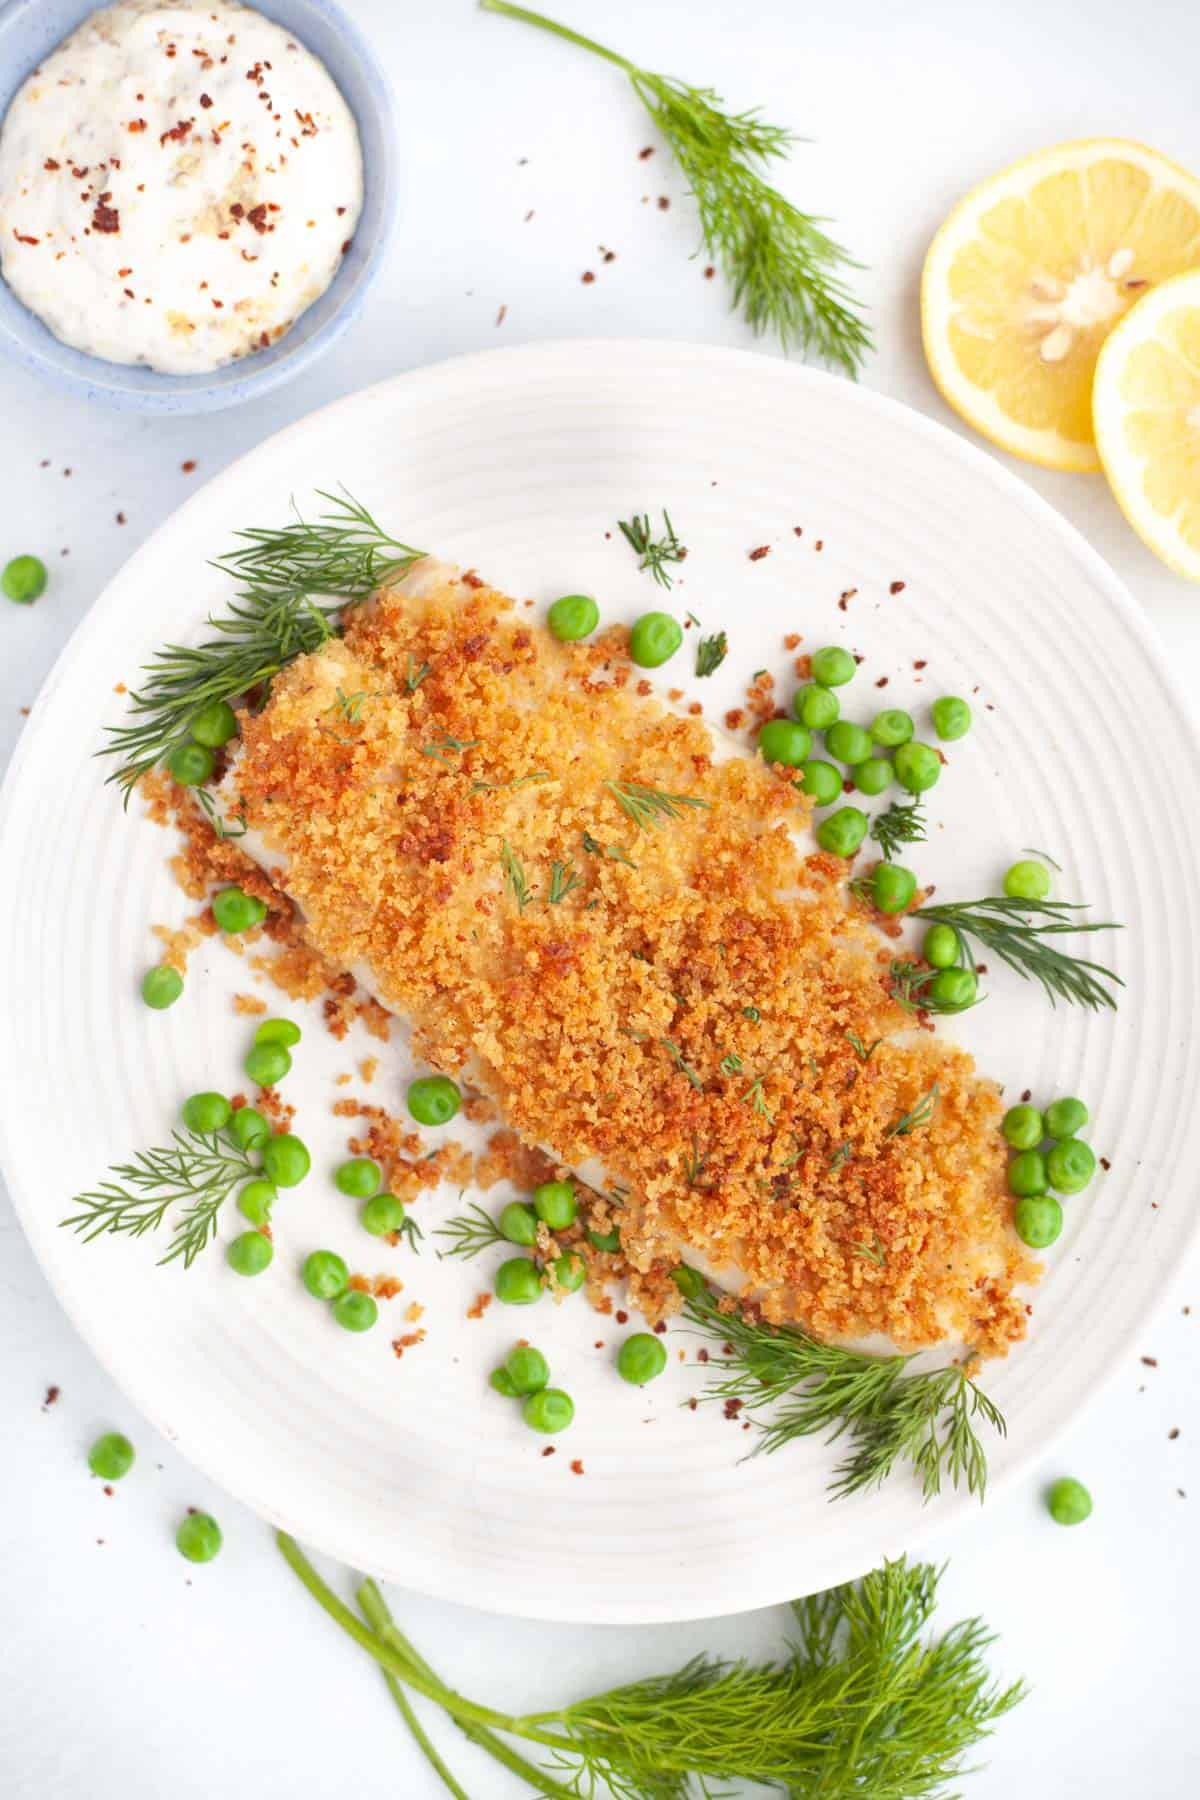 White plate with a fillet of baked panko cod, a small blue bowl filled with creme fraiche and mustard sauce on the side